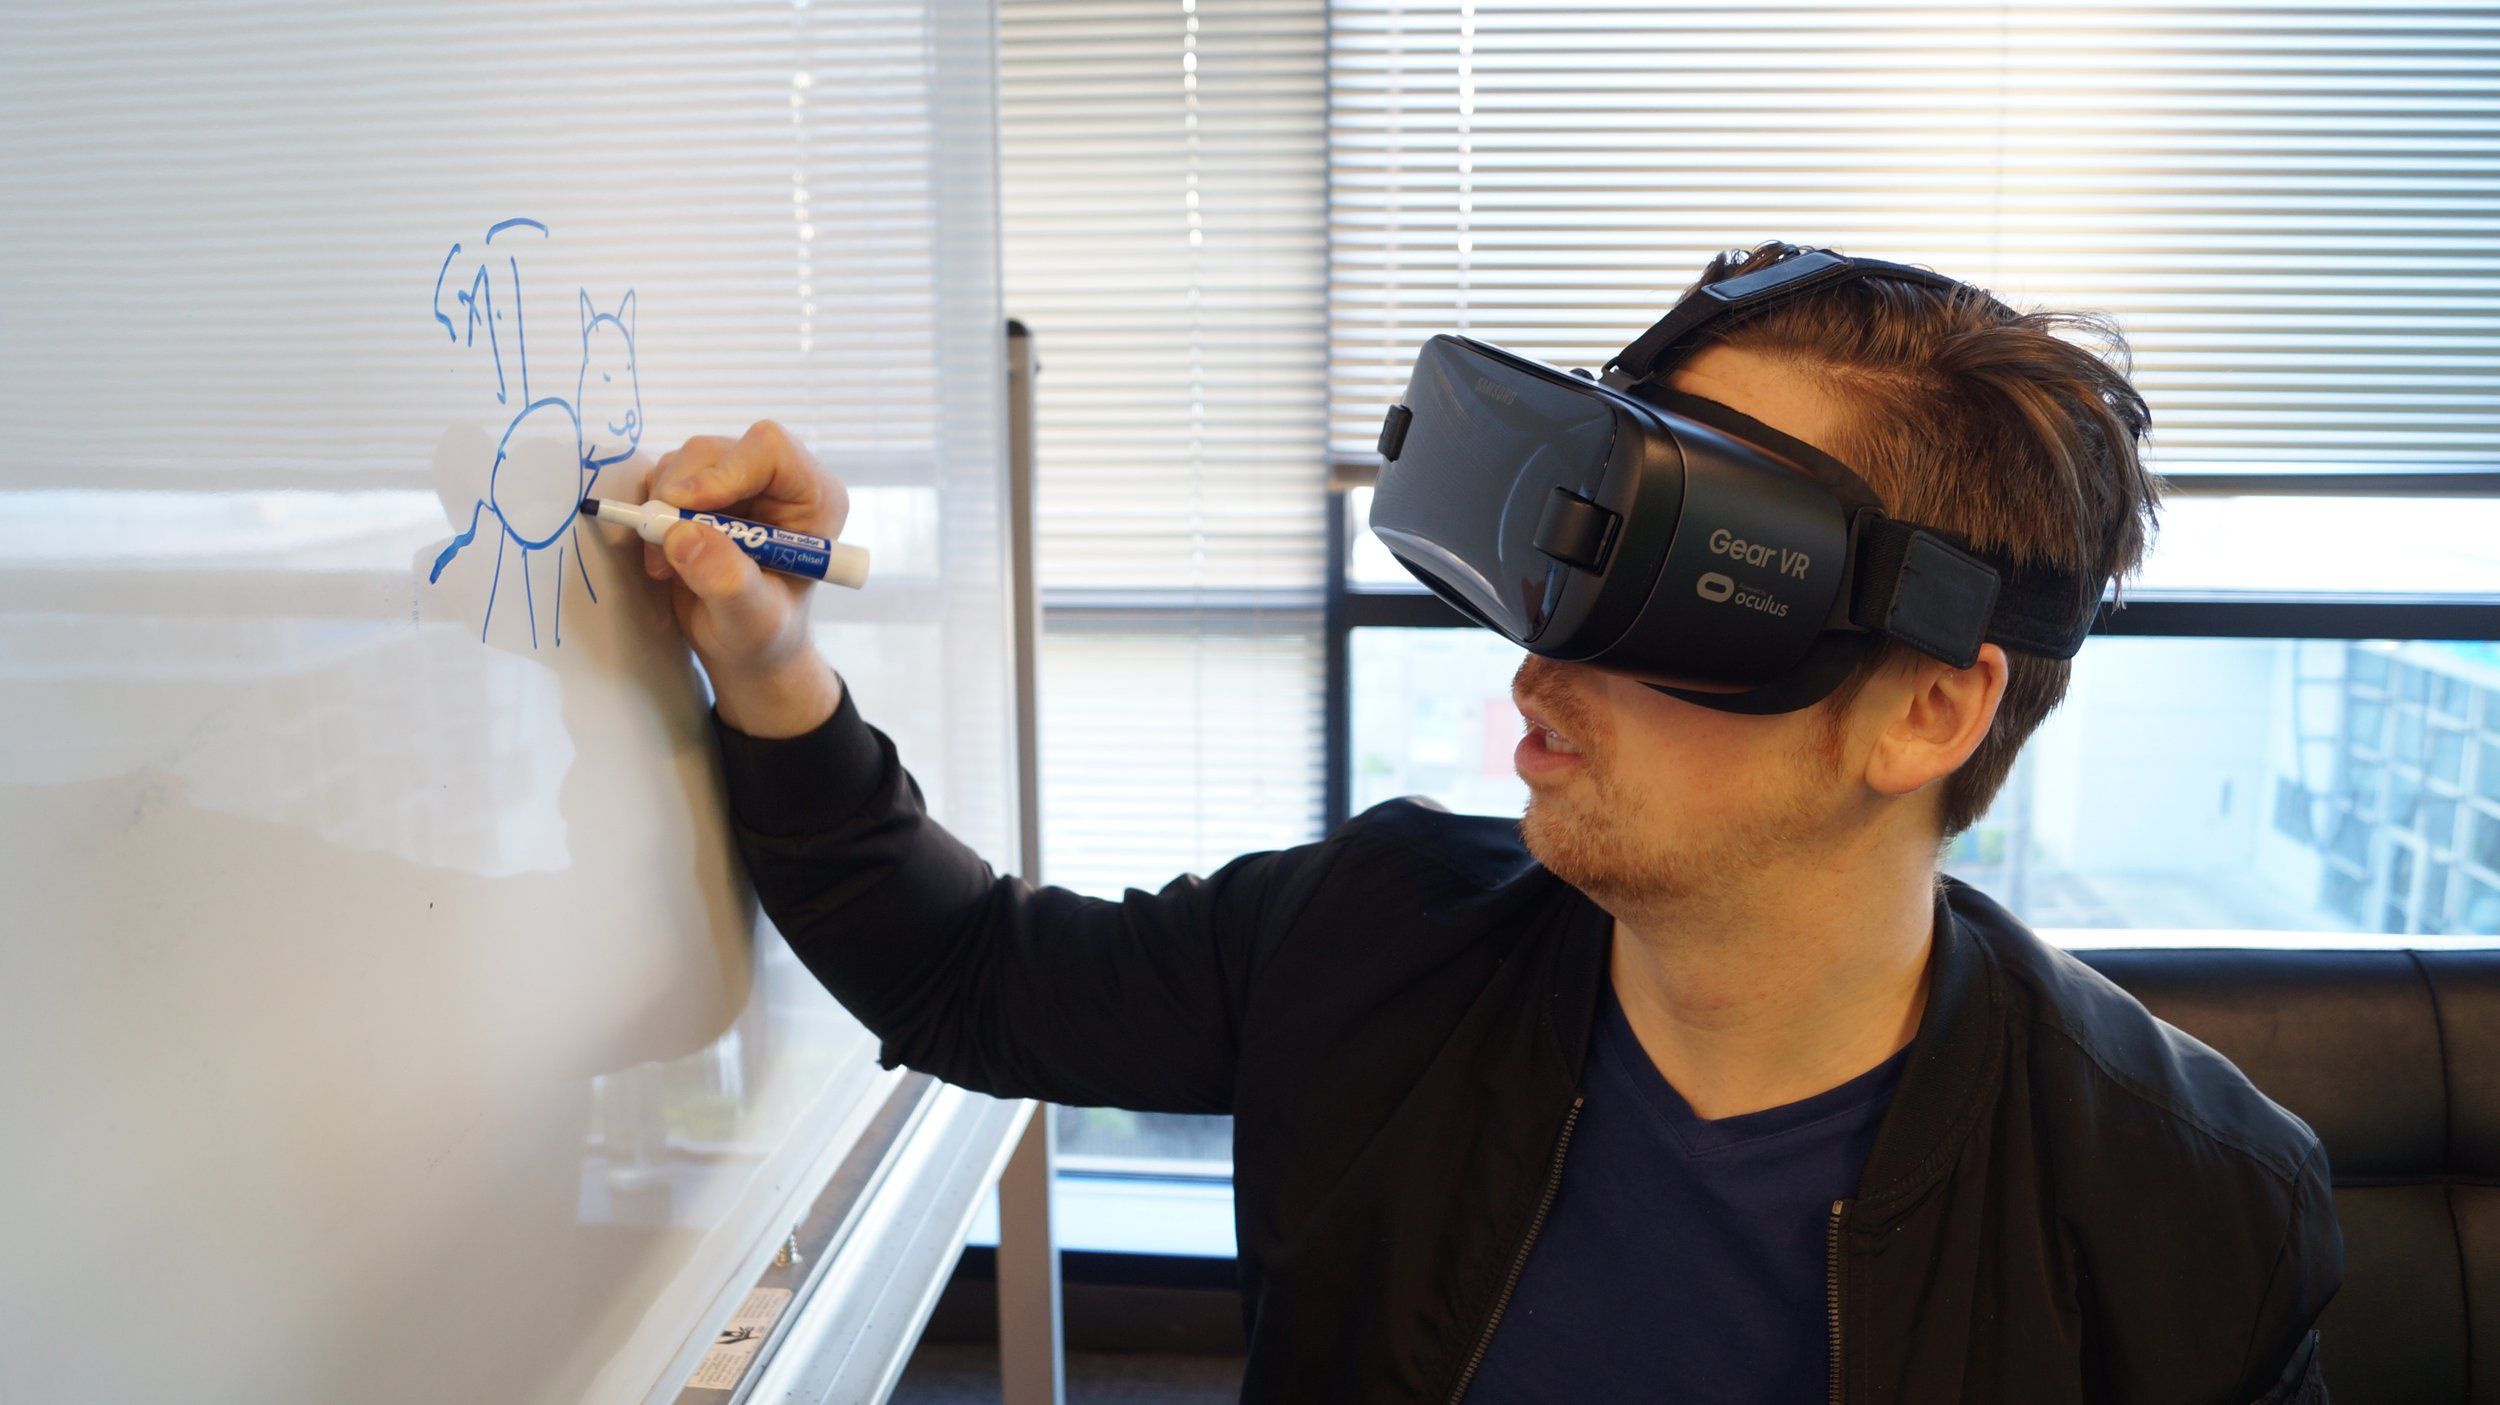 A facilitator using a VR headset while writing on a whiteboard